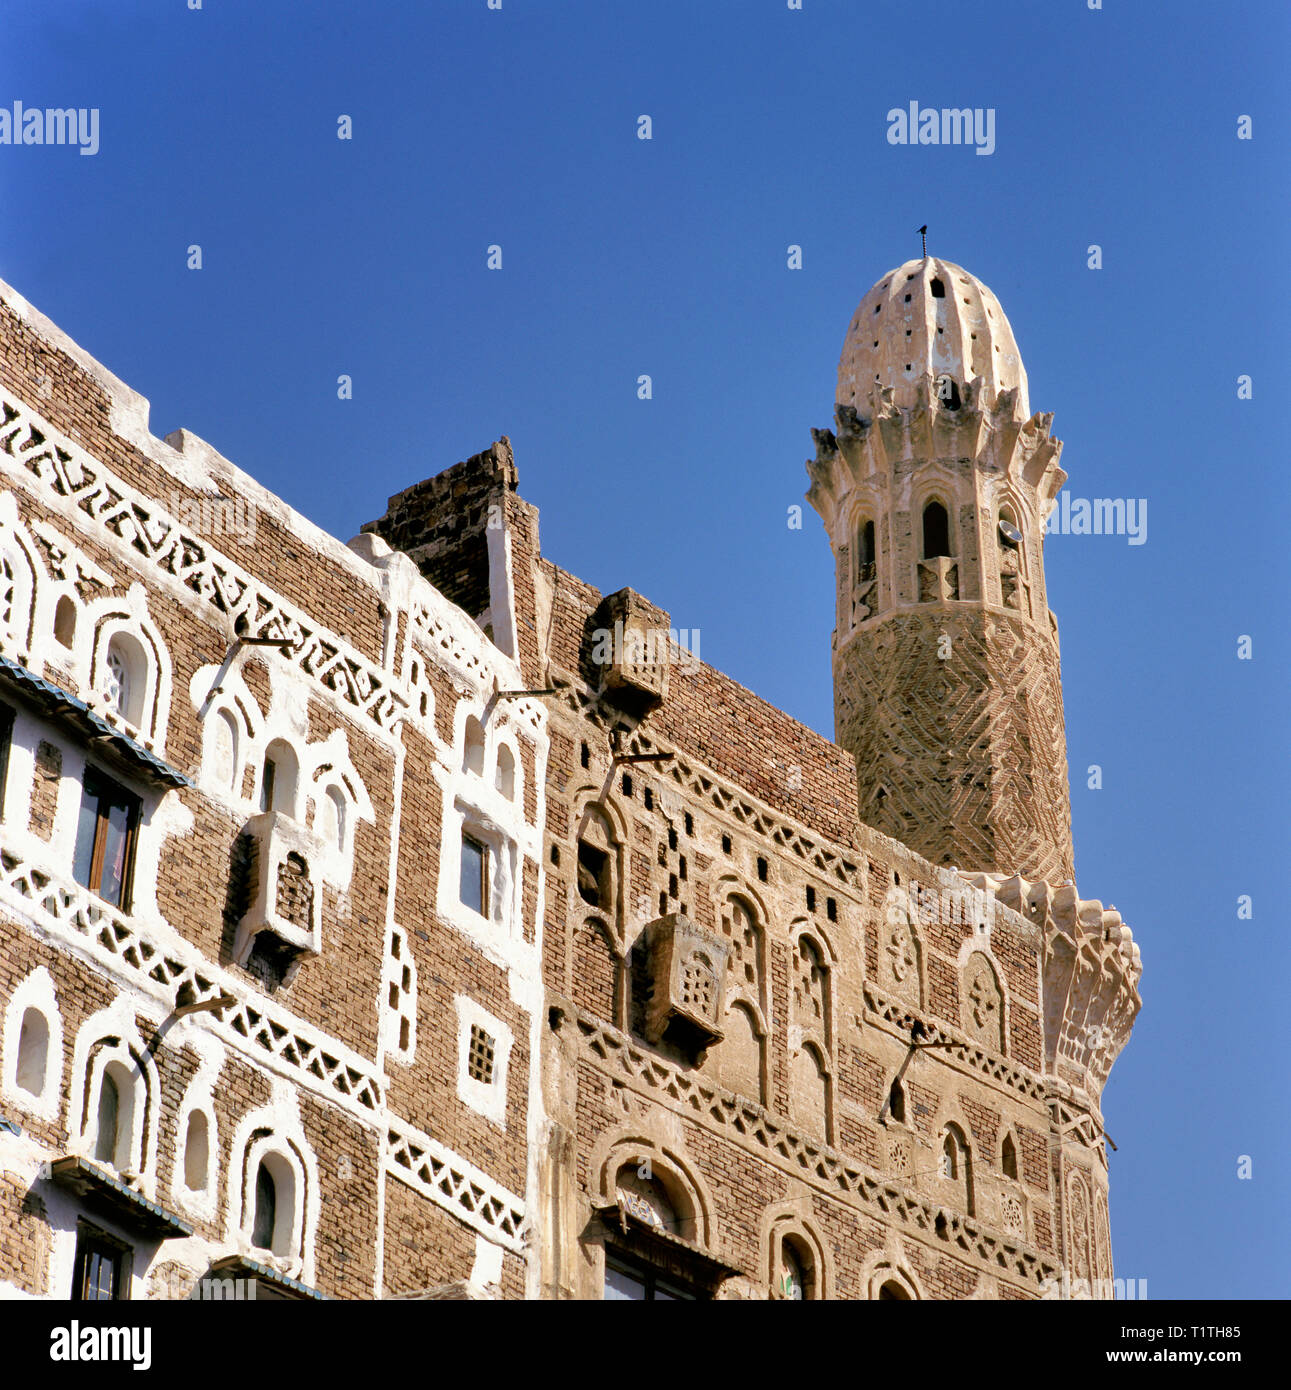 Traditional old houses and mosque in the Old Town, UNESCO World Heritage Site, Sanaa, Yemen, Middle East Stock Photo